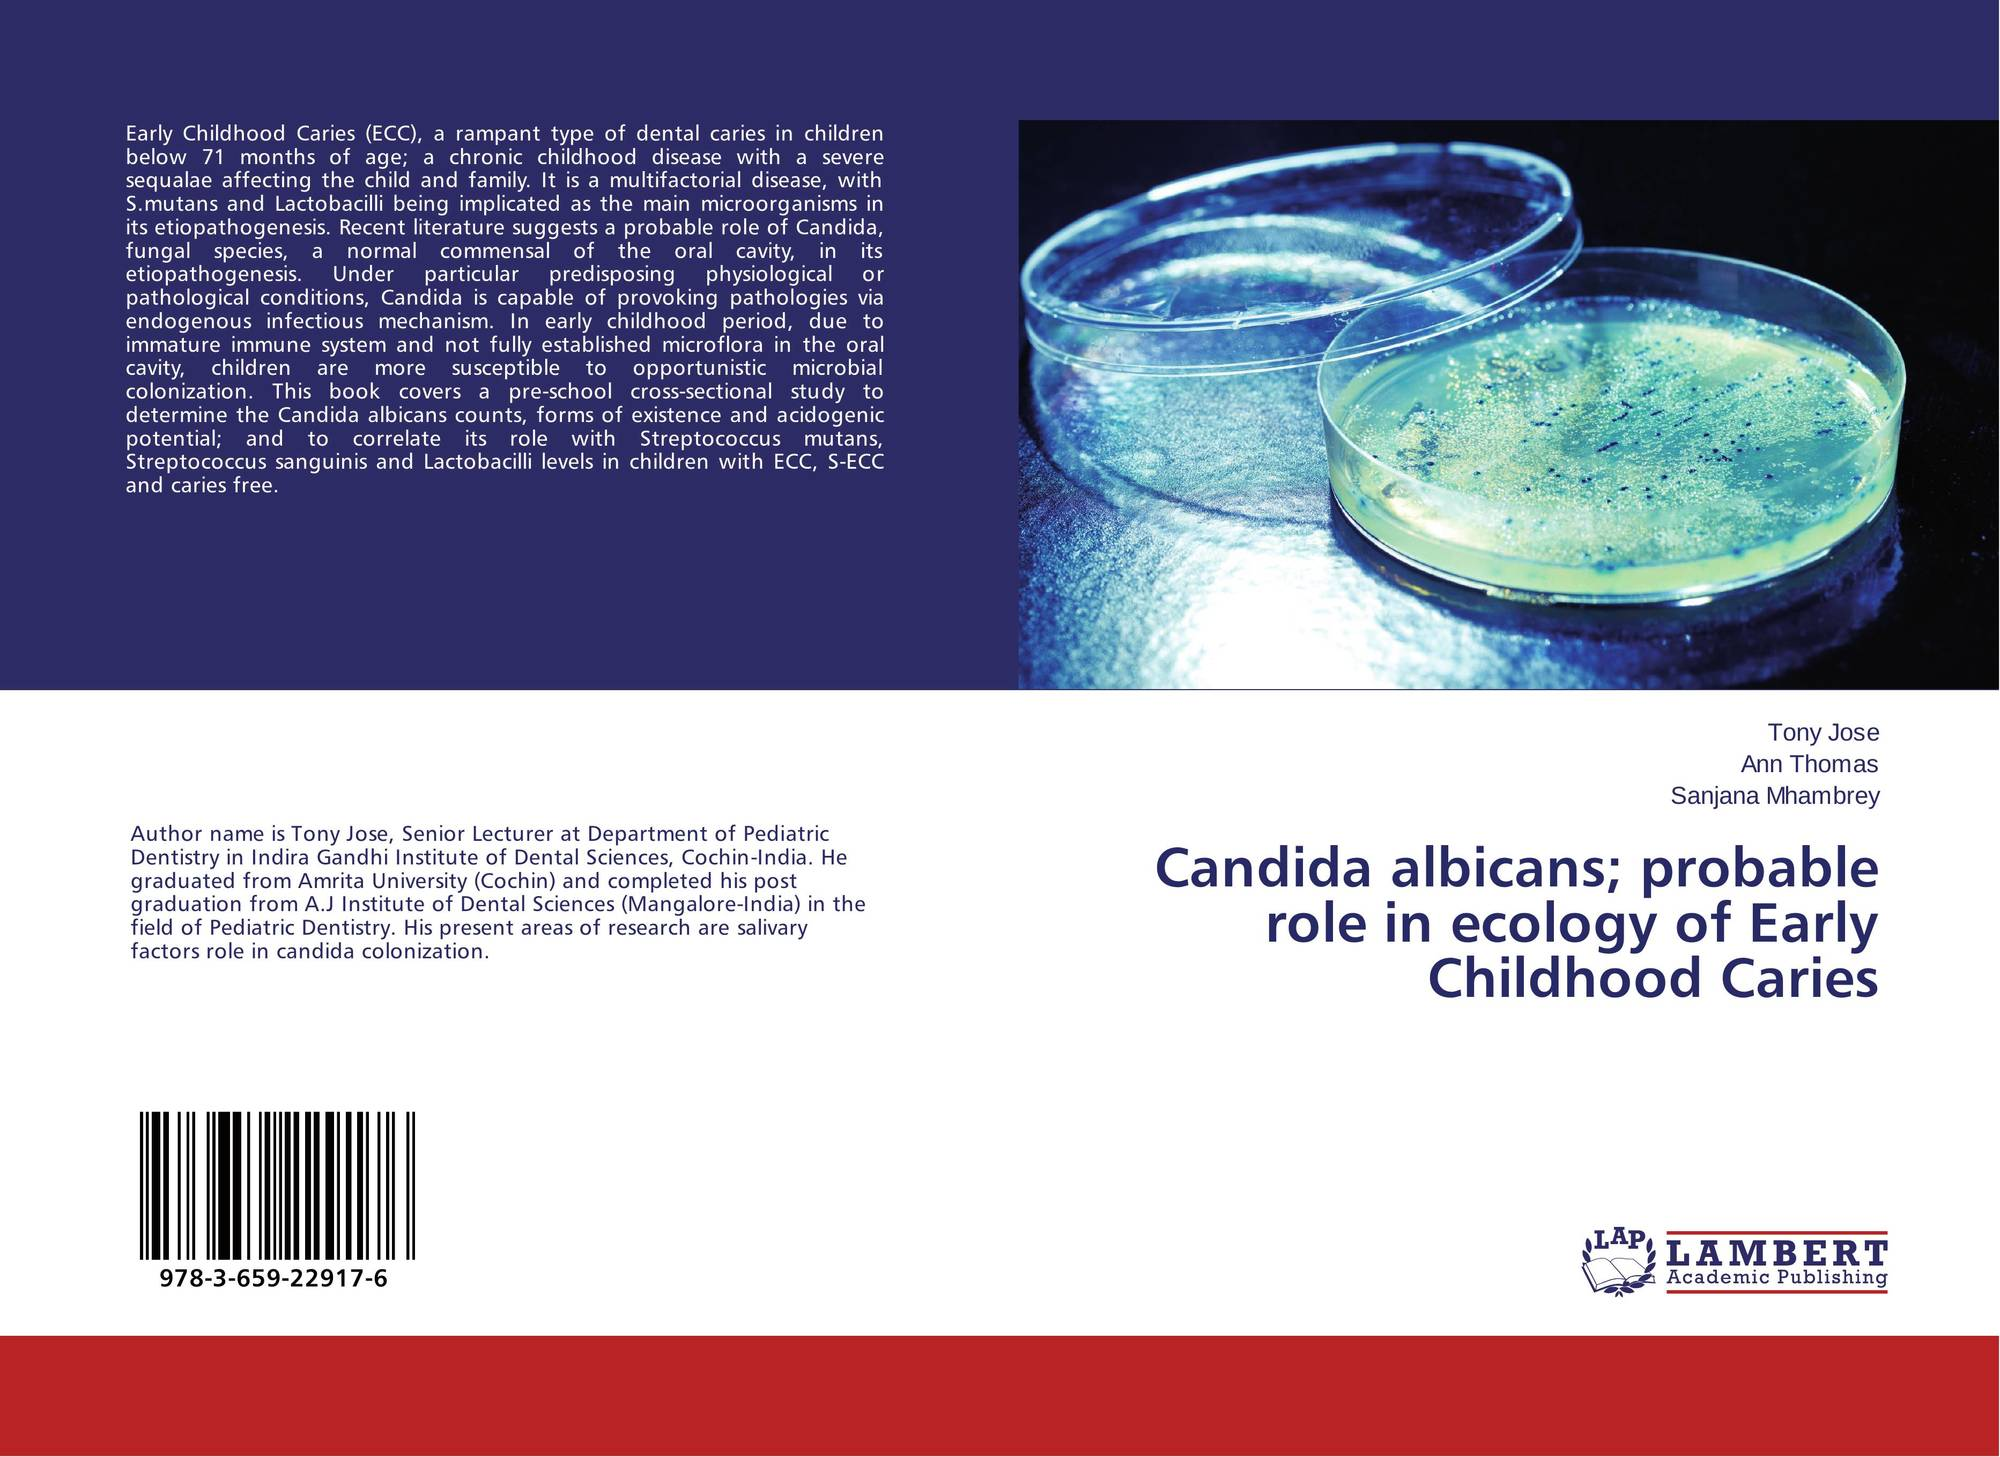 thesis on candida albicans Pre 2011 name candida albicans  thesis 1936 diddens & lodder, die anaskosporogenen  et al growth inhibitory properties of chalcones to candida.